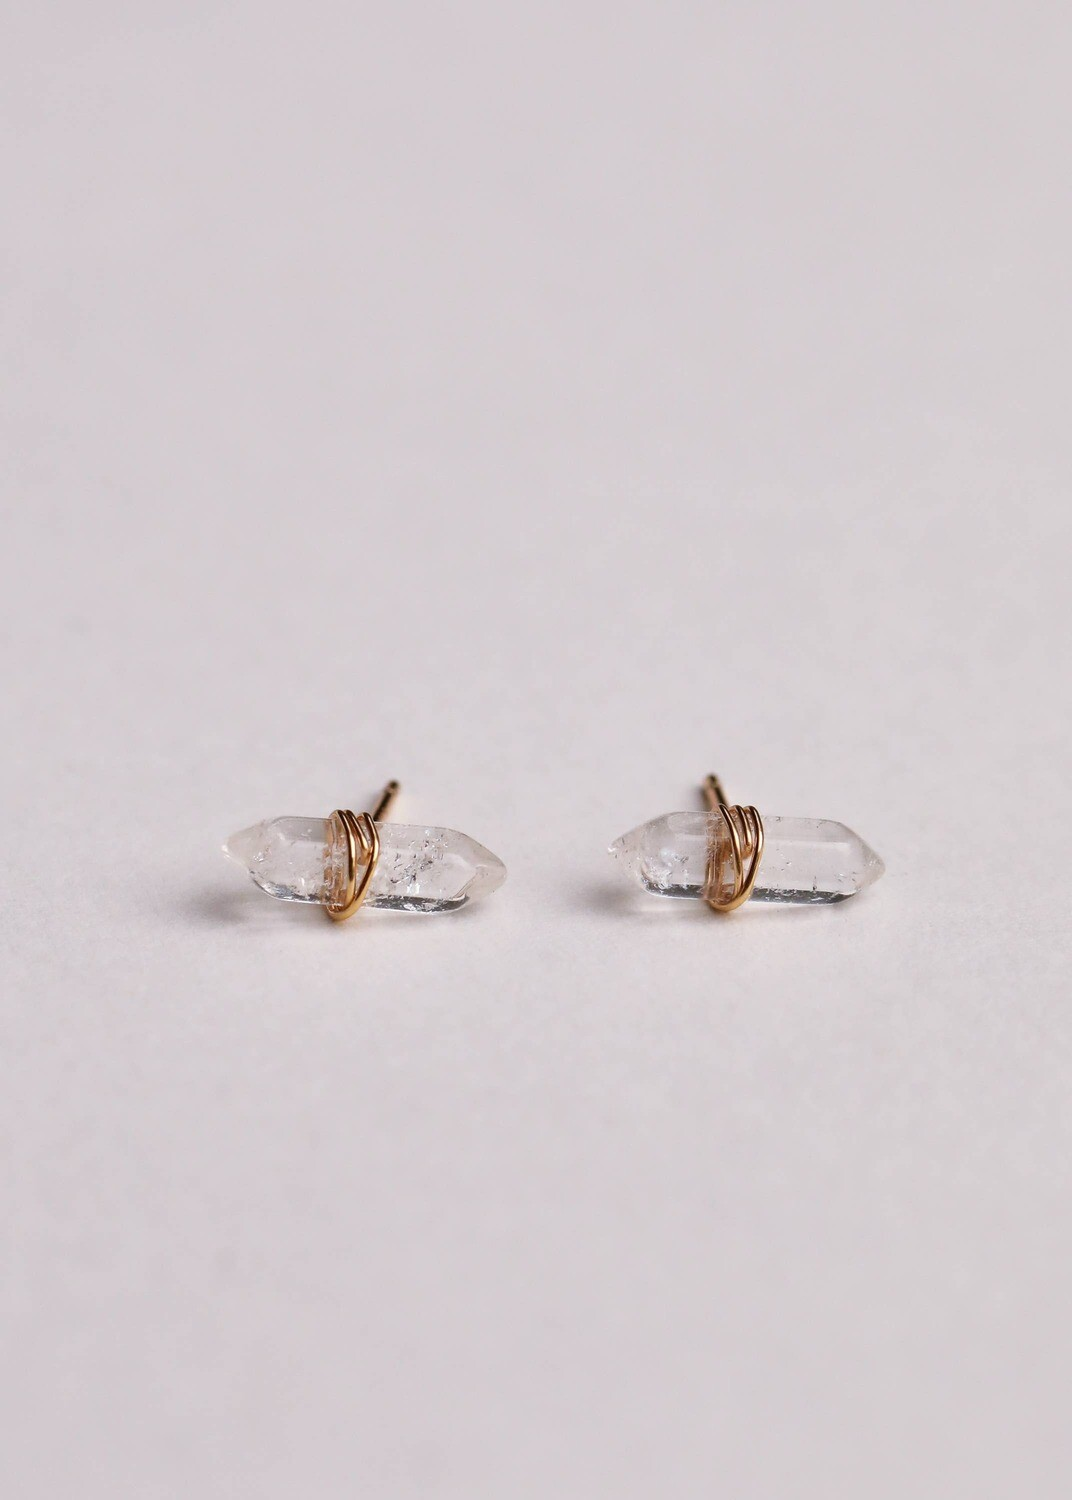 Quartz Mineral Point Posts - 18k Gold Over Silver - JK22